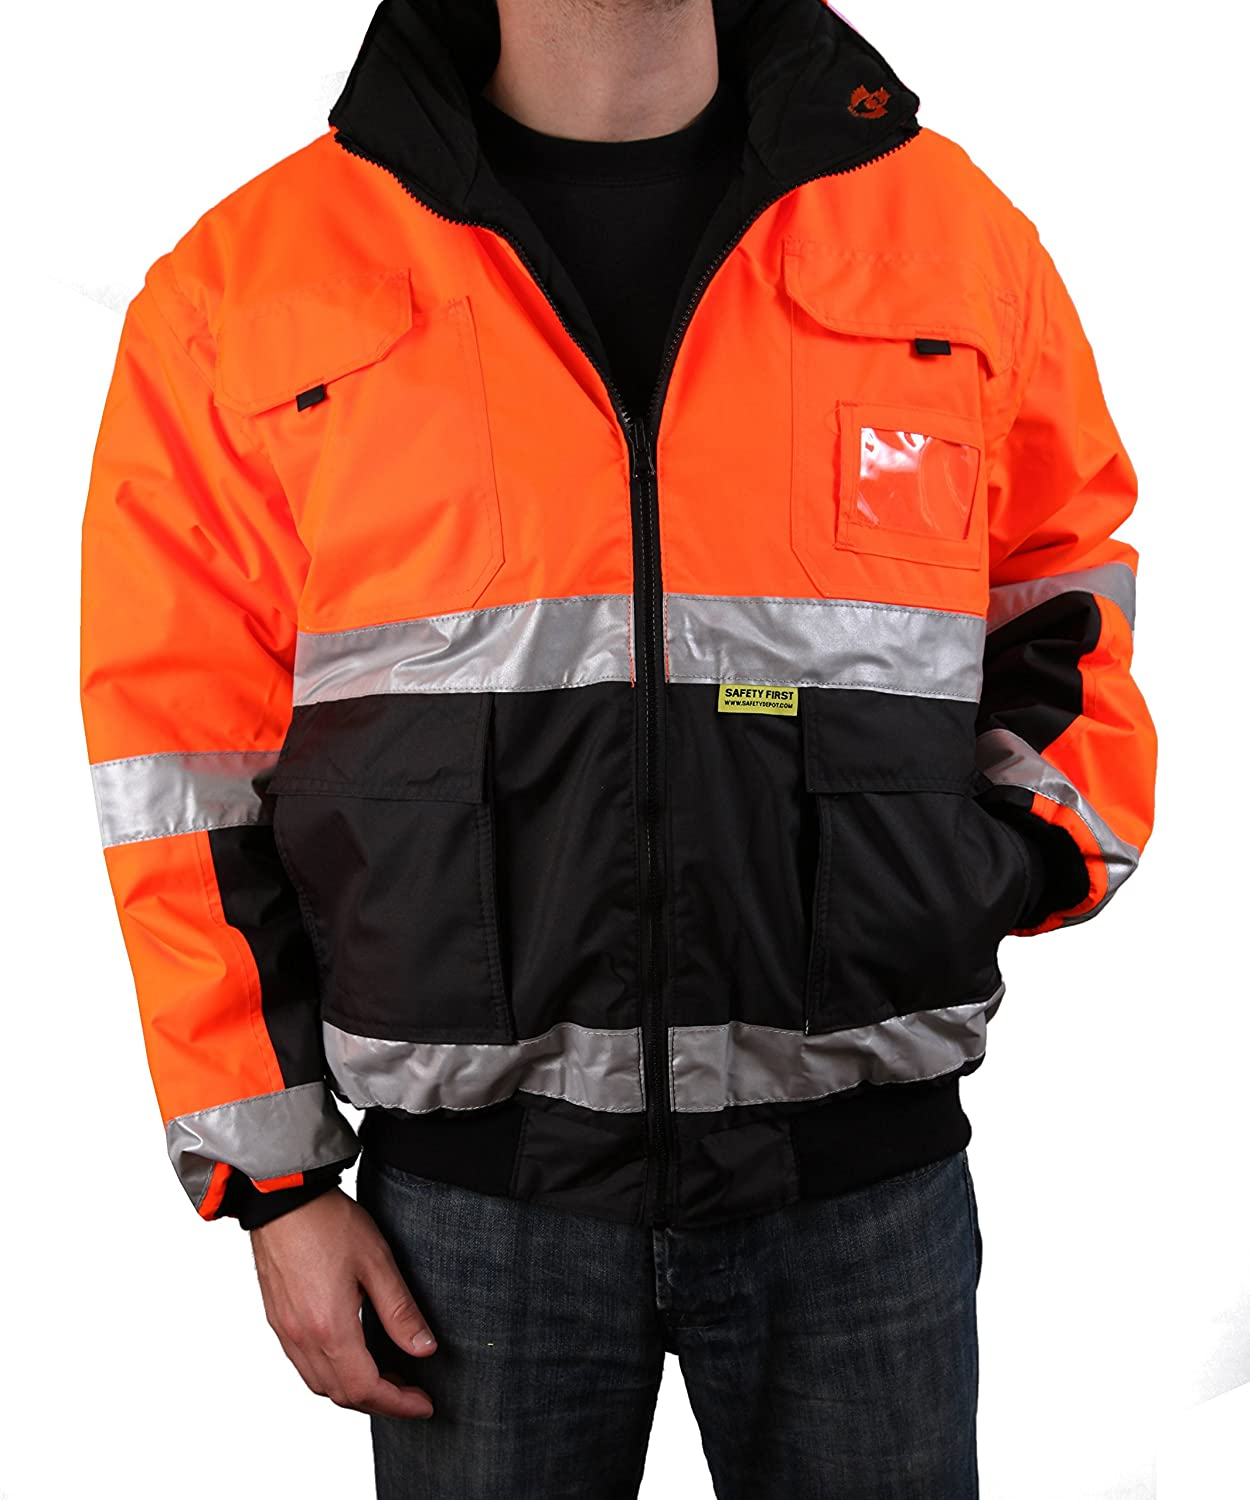 Safety Depot Two Tone Lime Yellow Black Reflective Class 3 Safety Bomber Jacket Reversible With Zipper and Pockets 350c-3 (Extra Large) 2W